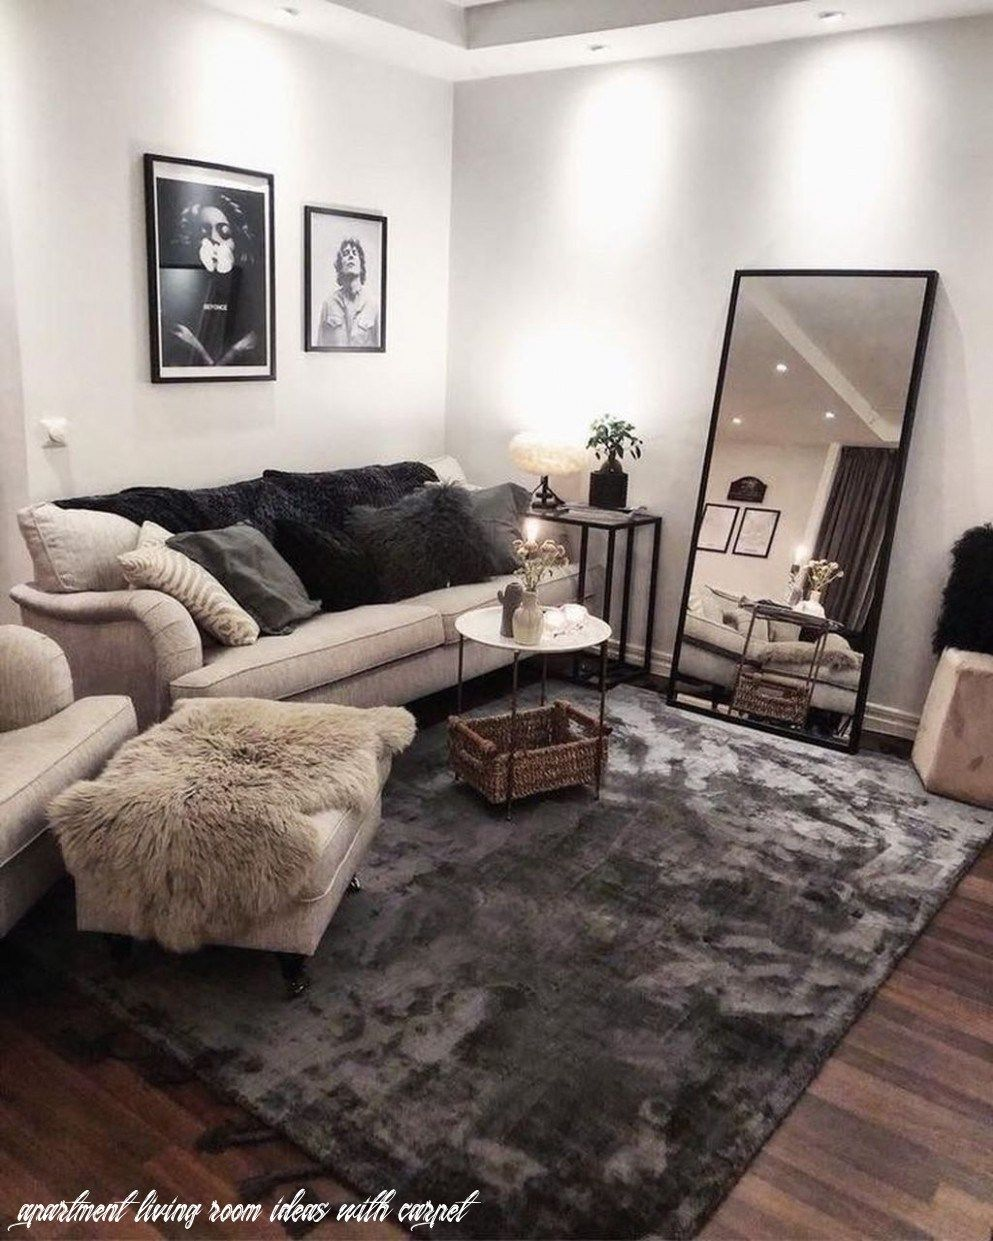 14 Apartment Living Room Ideas With Carpet In 2020 Small Living Room Decor Small Apartment Living Room Living Room Decor Apartment